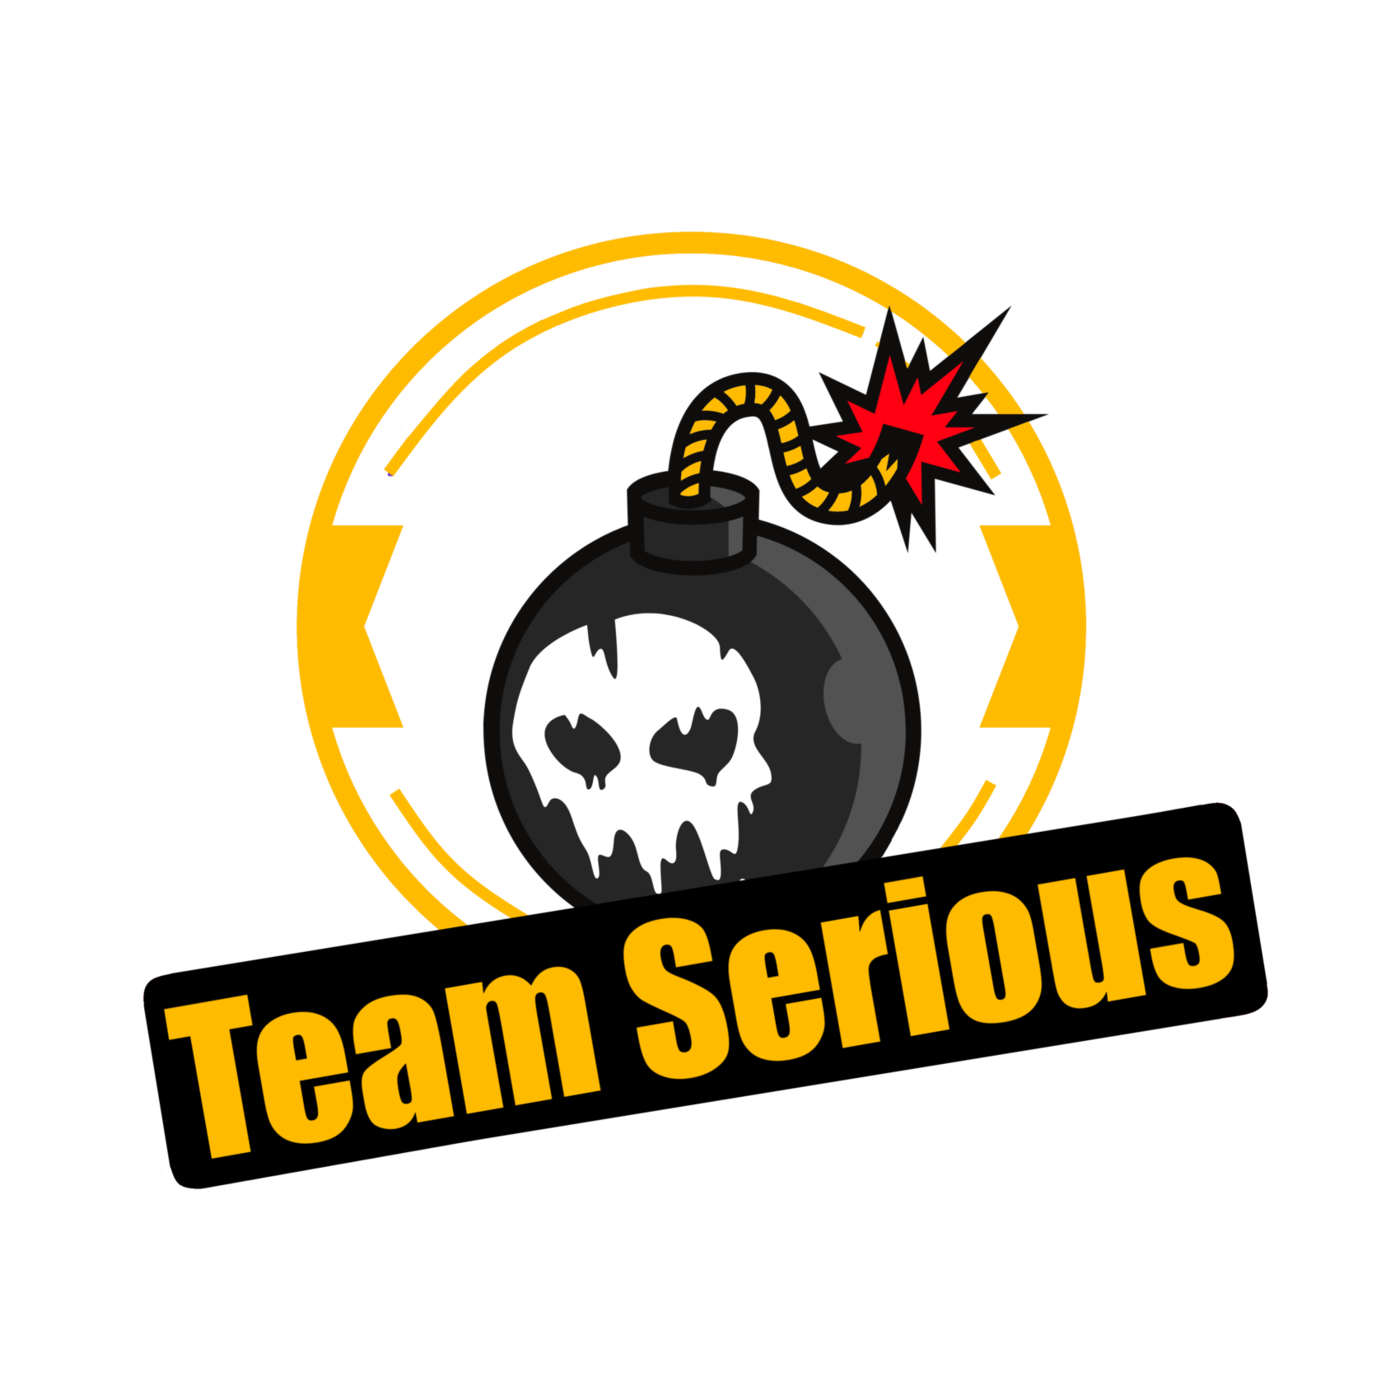 Team Serious DFW Talks - Serious Ladies & Gents - Turkey Talk